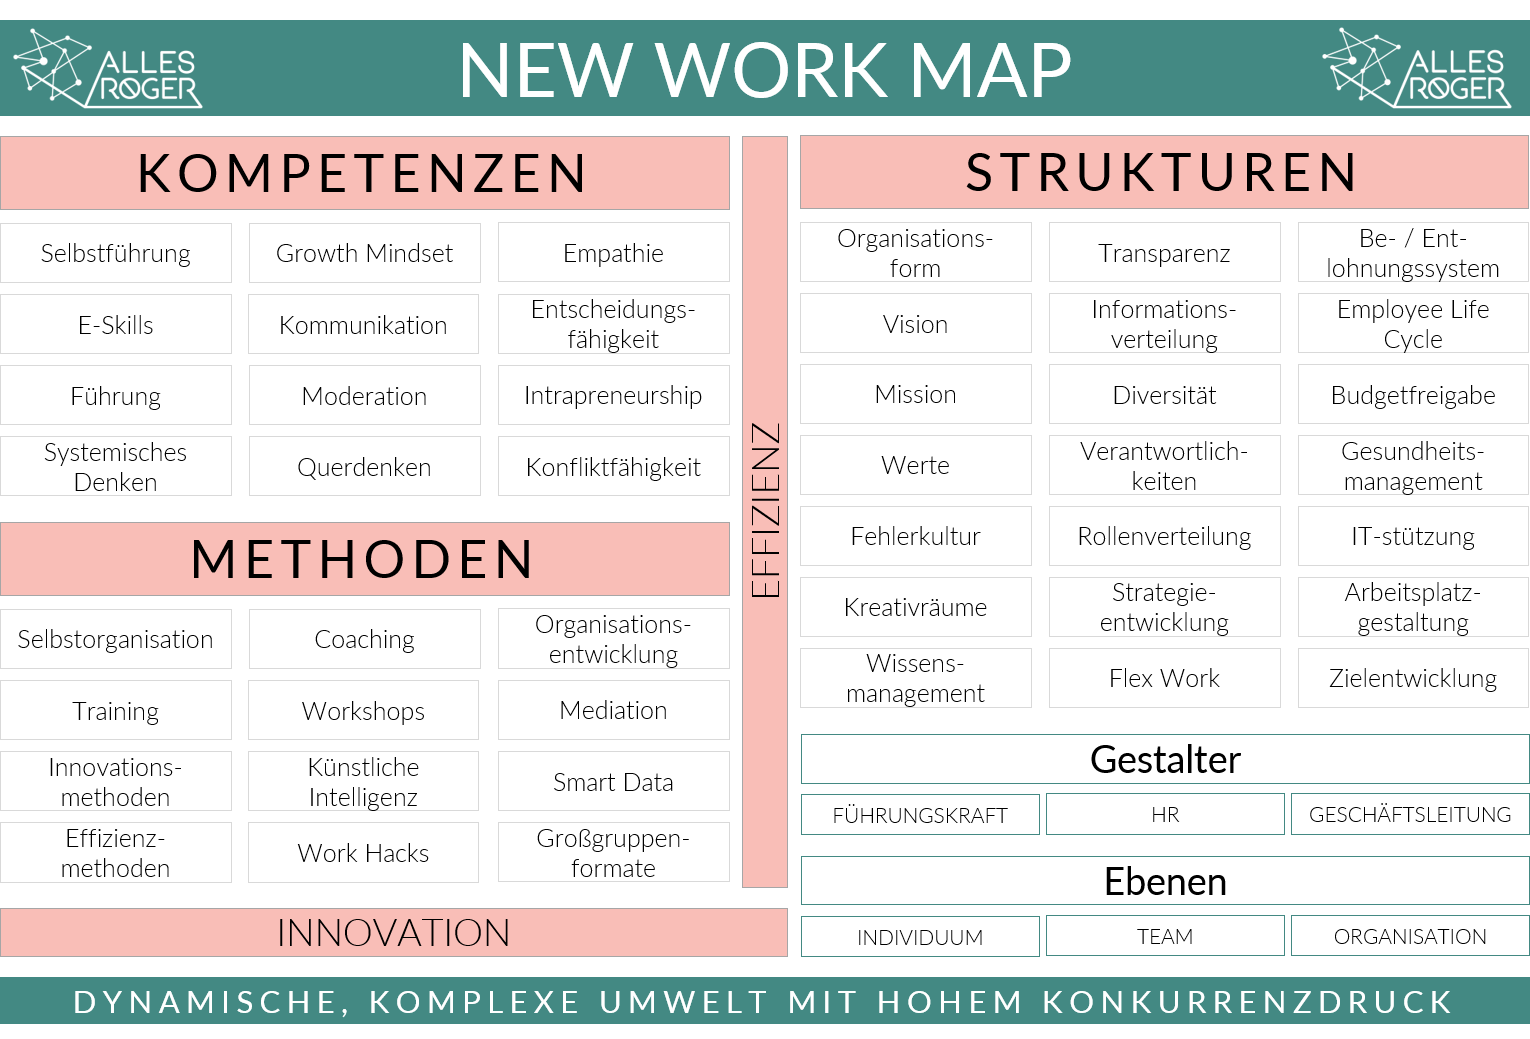 New Work Map Bunt Farbe.png